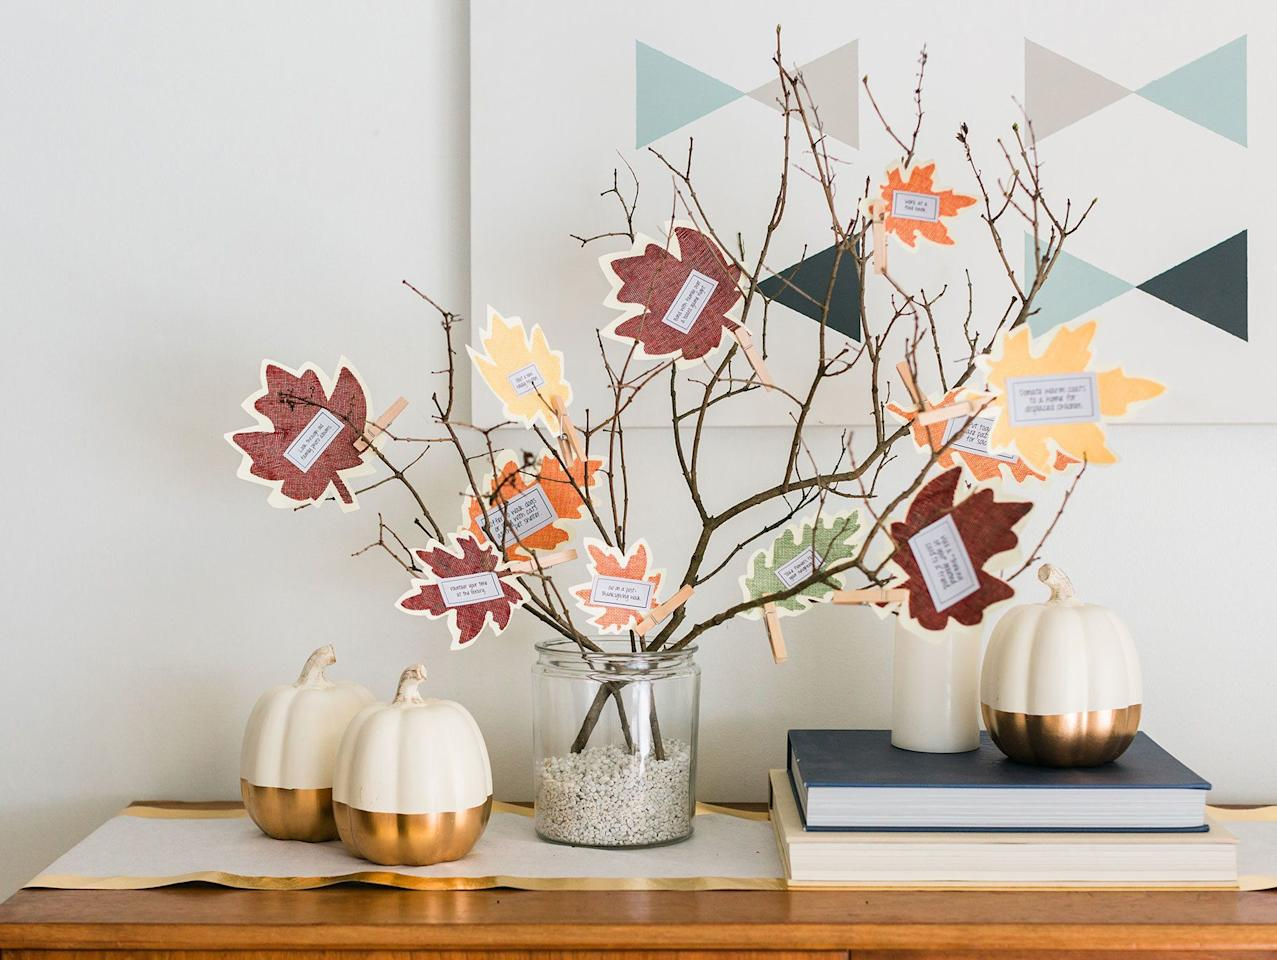 "<p>Thanksgiving is just around the corner, which means that it's time to deck out your home with festive holiday decor! When it comes to the best <a href=""https://www.goodhousekeeping.com/holidays/thanksgiving-ideas/g22688007/thanksgiving-decorations/"" target=""_blank"">Thanksgiving decorations</a>, there's nothing like a thankful tree to truly capture the spirit of the season. Thankful trees, or gratitude trees, are a great <a href=""https://www.goodhousekeeping.com/holidays/thanksgiving-ideas/g28635093/unique-thanksgiving-traditions/"" target=""_blank"">Thanksgiving tradition</a> that involves inviting your guests to write down what they're most thankful for on an ornament, then place it on the tree as part of an interactive seasonal display. Not only do these crafts make for a great holiday decor piece, it's also a wonderful way to give thanks for the season.</p><p>Luckily, if you're looking for ways to DIY your own Thanksgiving tree, we've rounded up all the best ideas here, from printable posters you can hang on the wall to festive mini-trees you can easily make with a few branches and some craft supplies. Whether you're looking for an elegant seasonal display or something you can easily craft with the kids, these creative DIY thankful trees make for great <a href=""https://www.goodhousekeeping.com/home/decorating-ideas/g30445806/diy-wall-decor-ideas/"" target=""_blank"">wall decor ideas</a>, <a href=""https://www.goodhousekeeping.com/home/decorating-ideas/g33418751/fall-mantel-decor-ideas/"" target=""_blank"">fall mantel decorations,</a> or even beautiful <a href=""https://www.goodhousekeeping.com/holidays/thanksgiving-ideas/g1681/thanksgiving-centerpieces-easy-elegant/"" target=""_blank"">Thanksgiving centerpieces</a> for your table — and will definitely have you and the entire family giving thanks for the best holiday tradition yet!  </p>"